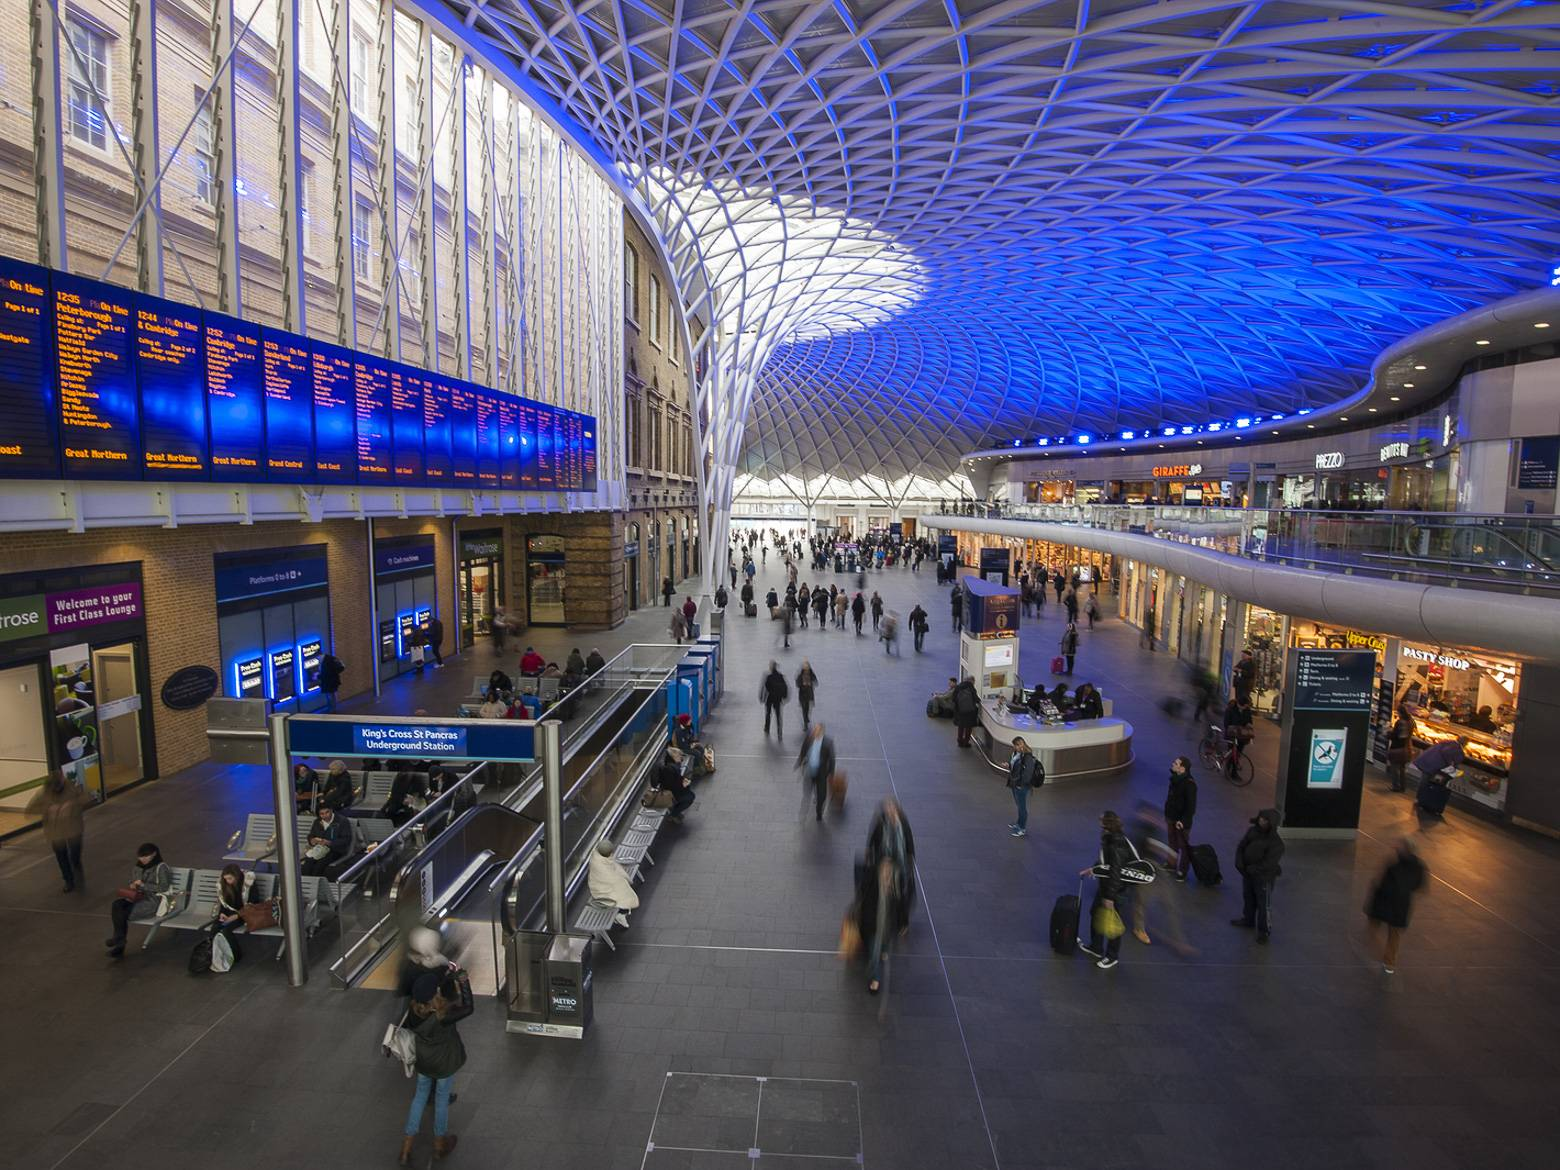 Image of Kings Cross Station concourse in London